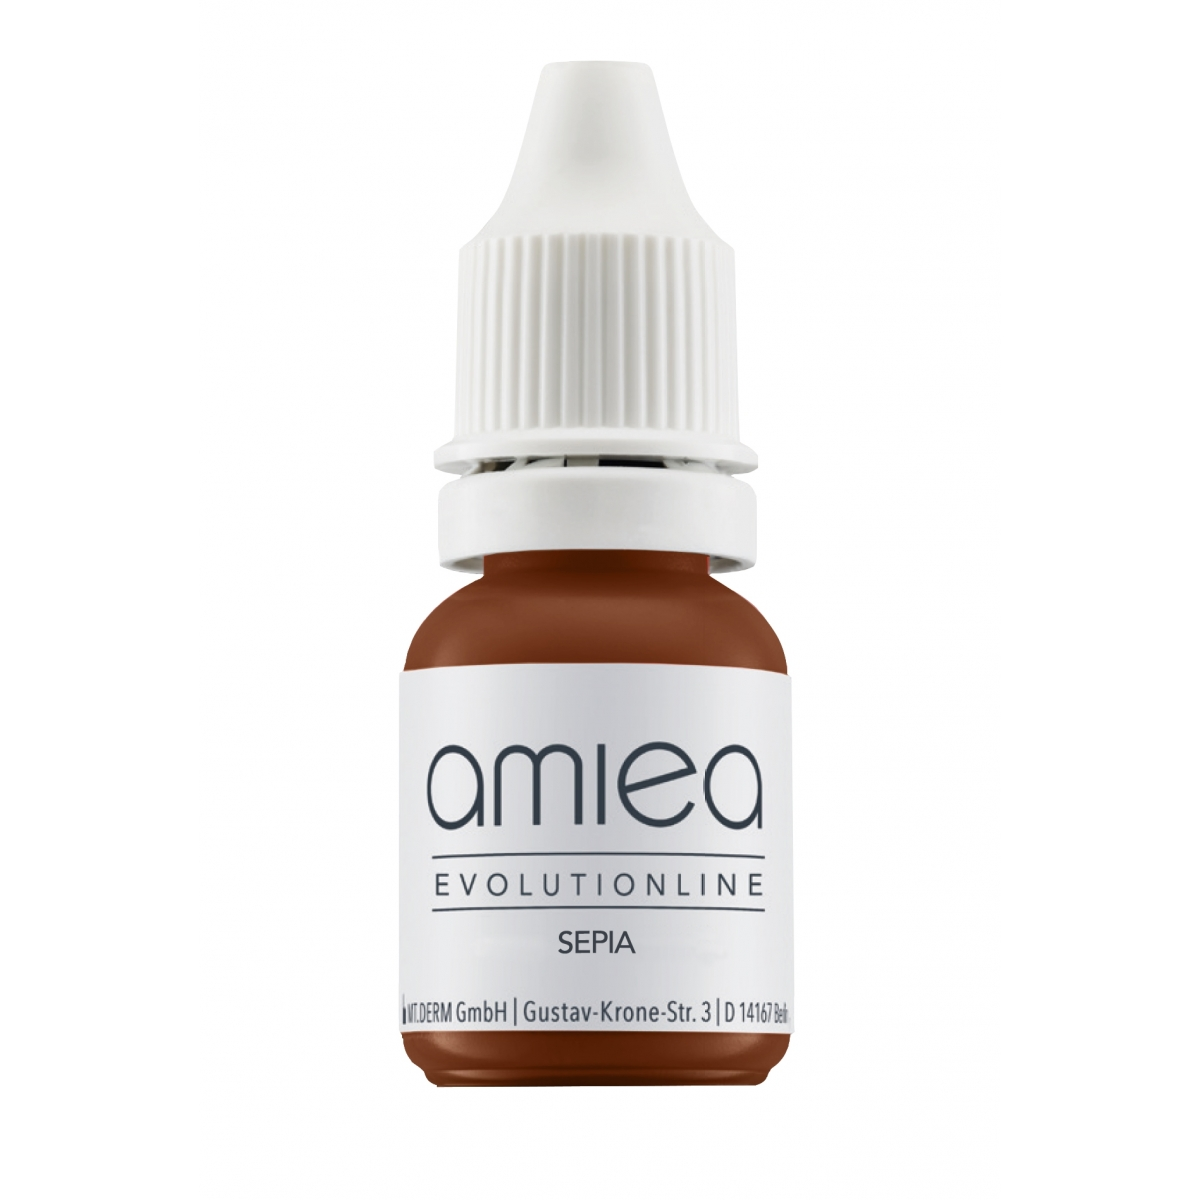 Evolutionline (10 ml) - PIGMENTS AMIEA EVOLUTIONLINE SEPIA, 10 ml